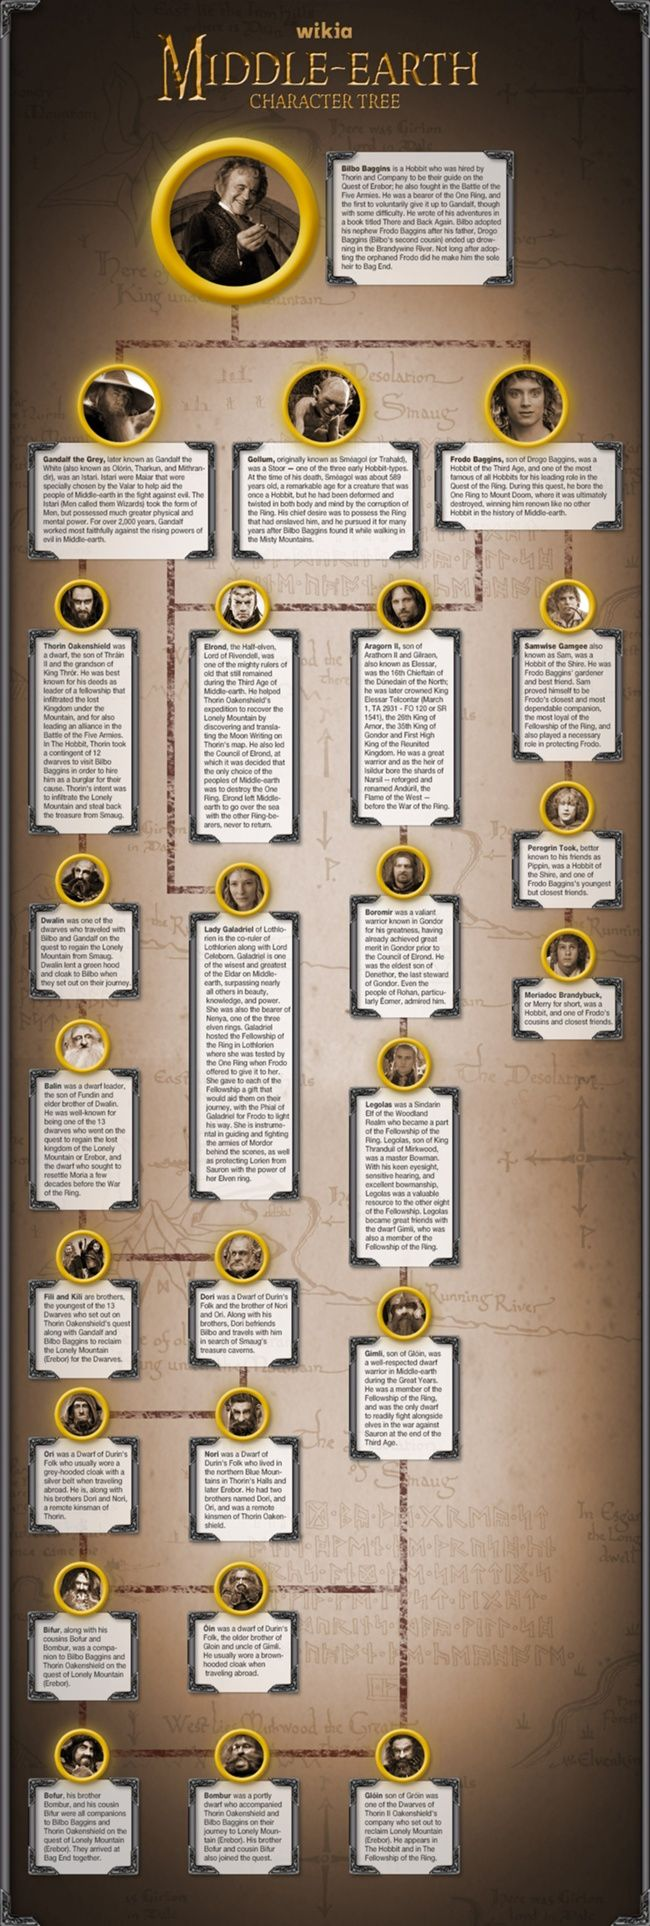 Middle Earth Character Tree